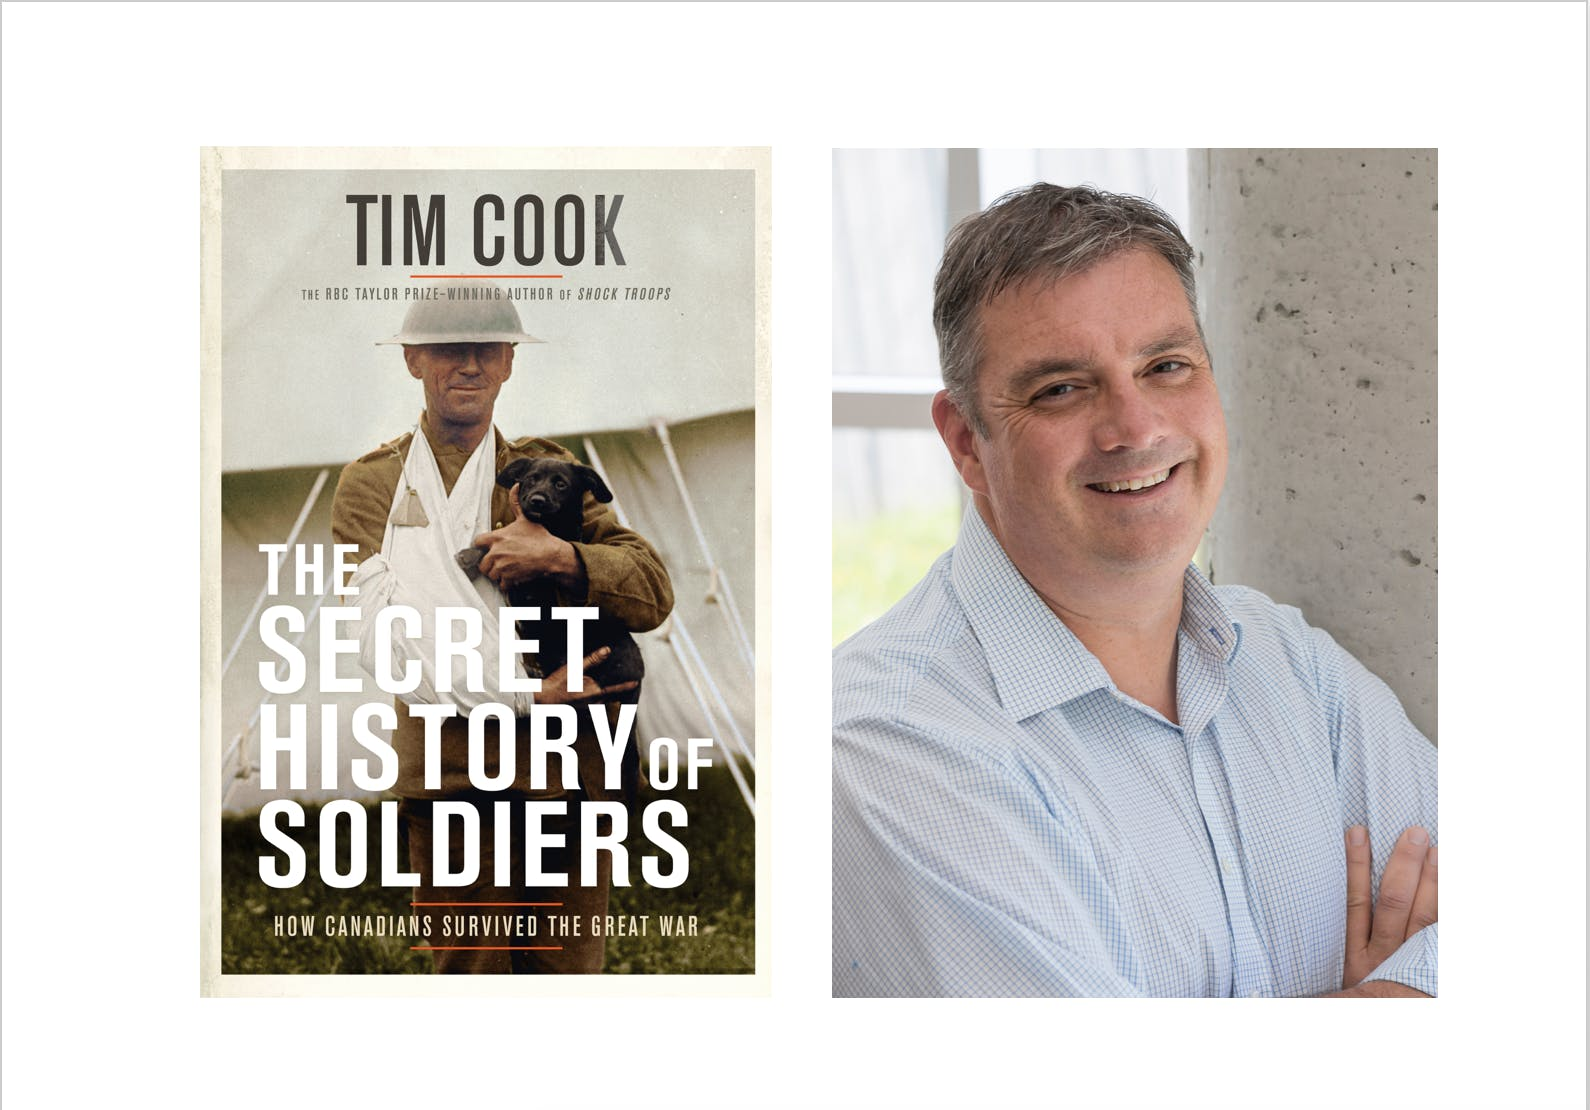 The Secret History of Soldiers: An Evening wi